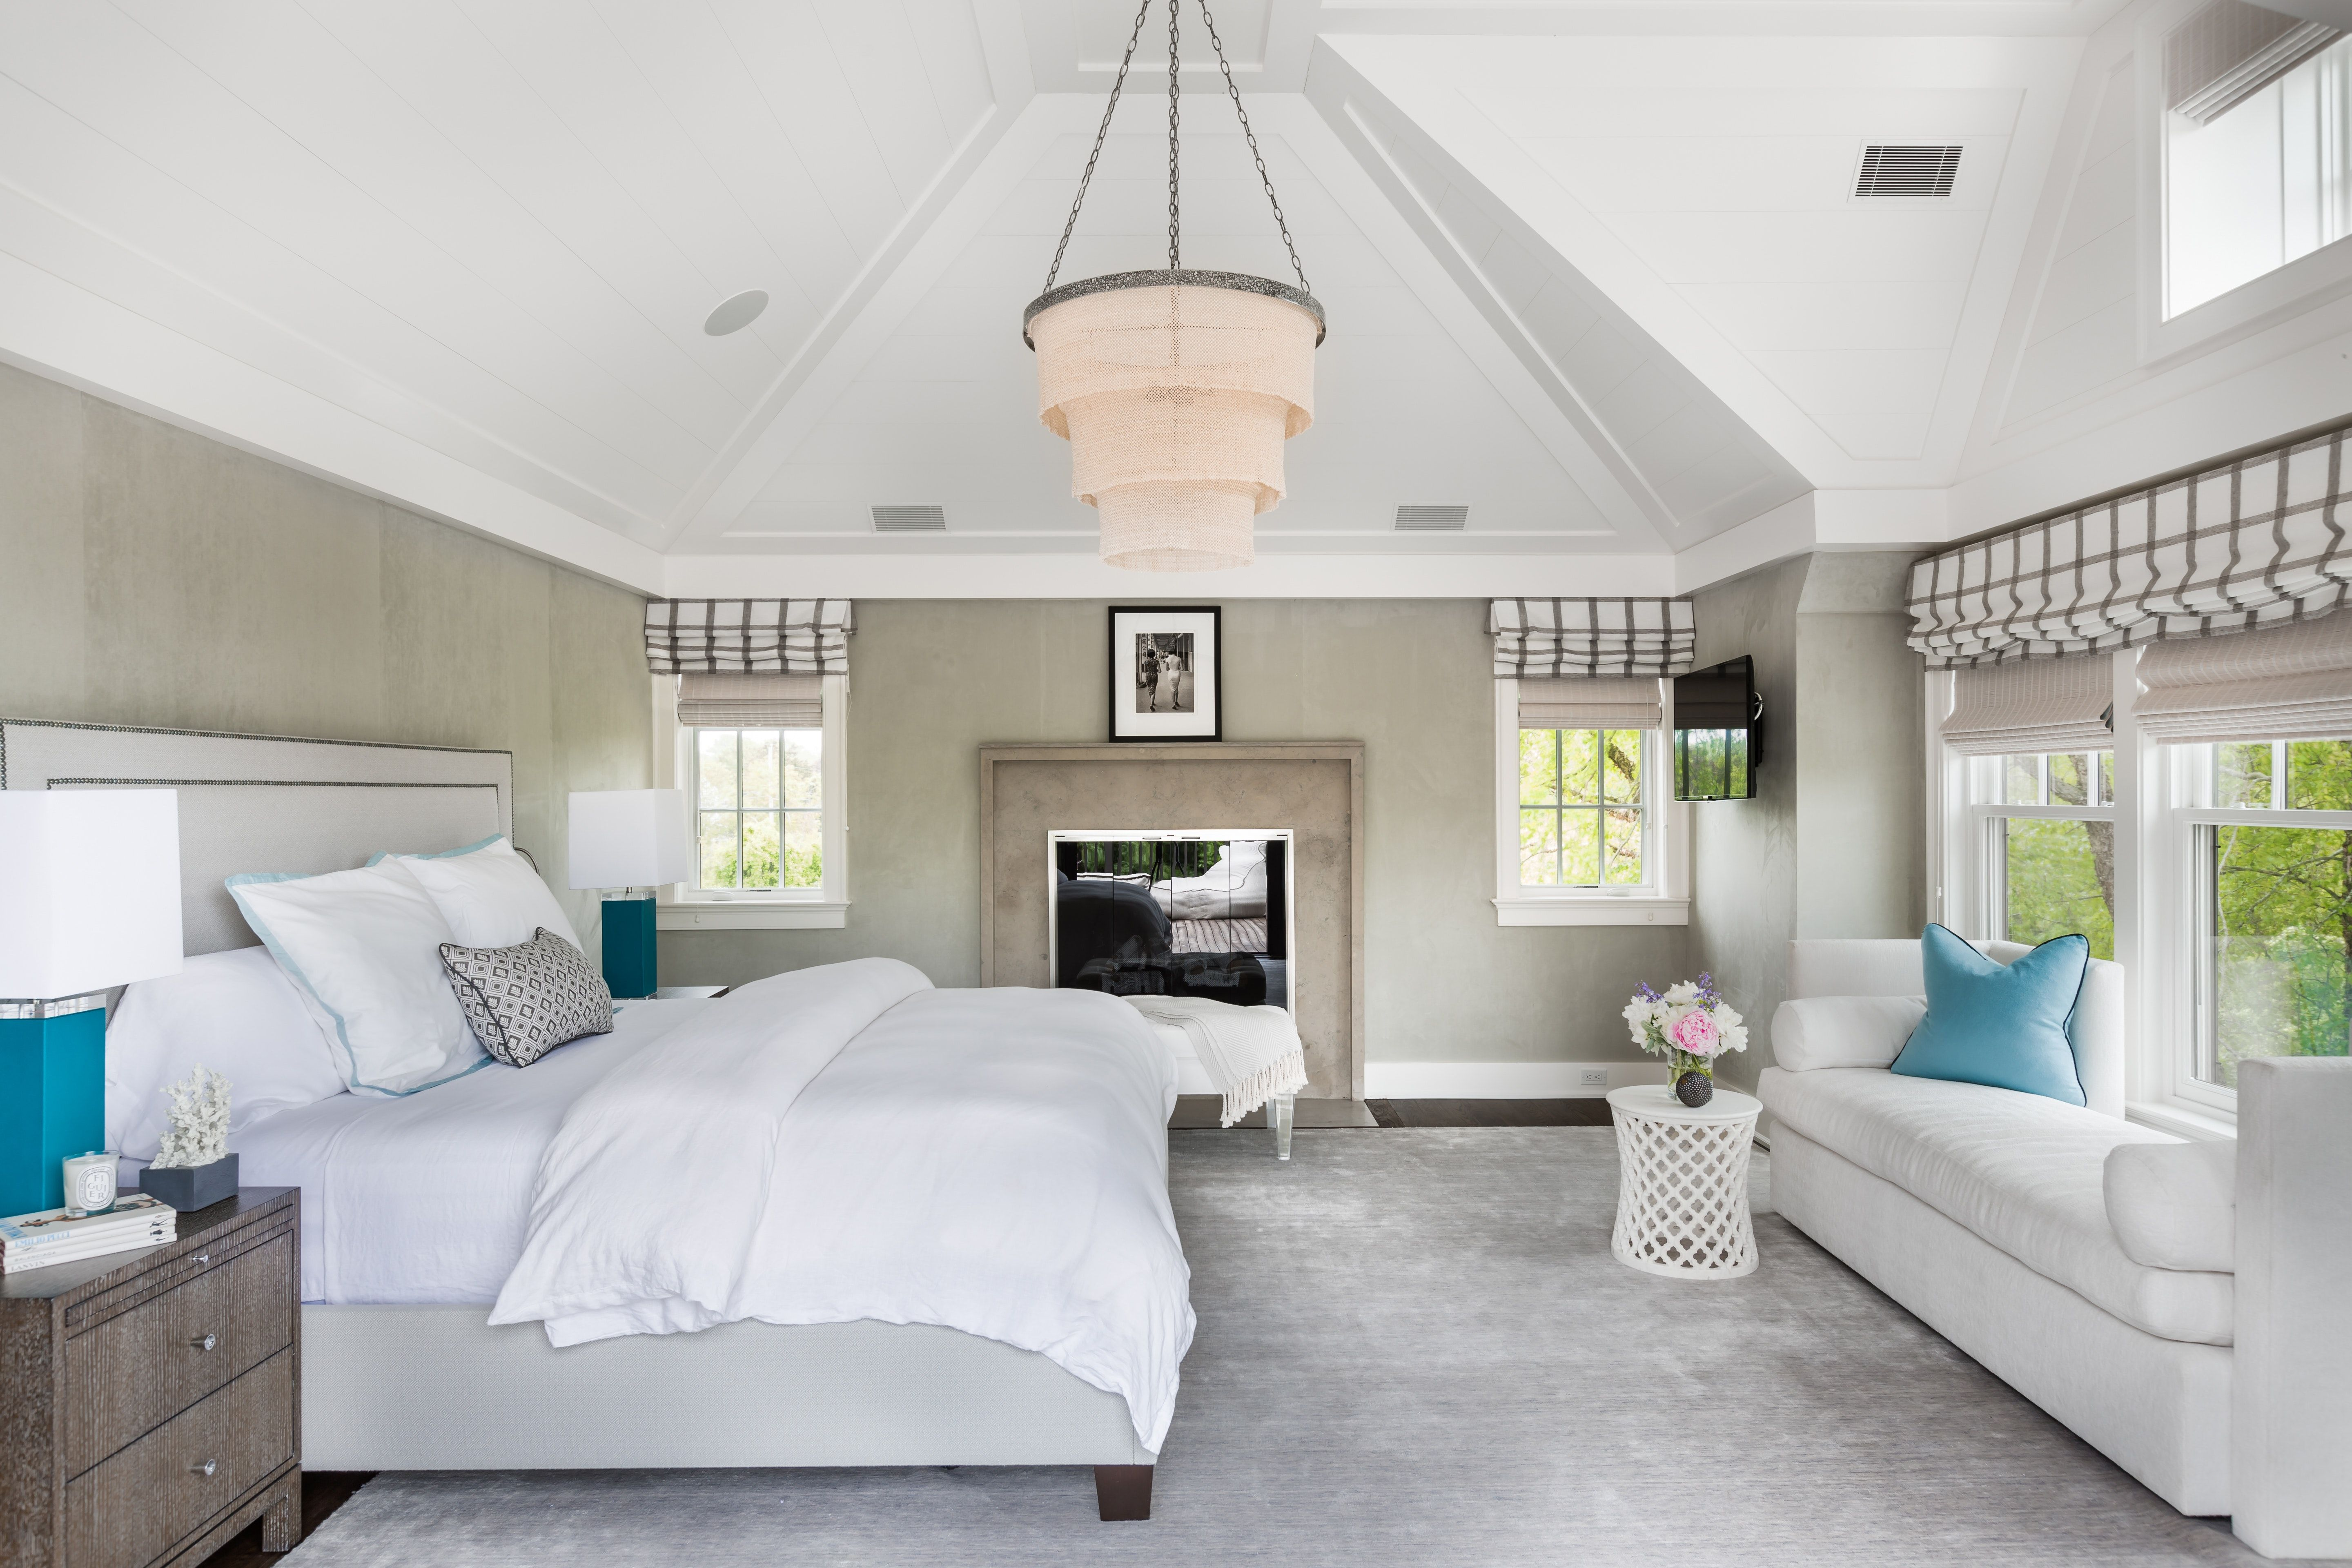 Bedroom with vaulted ceiling by alisberg parker architects